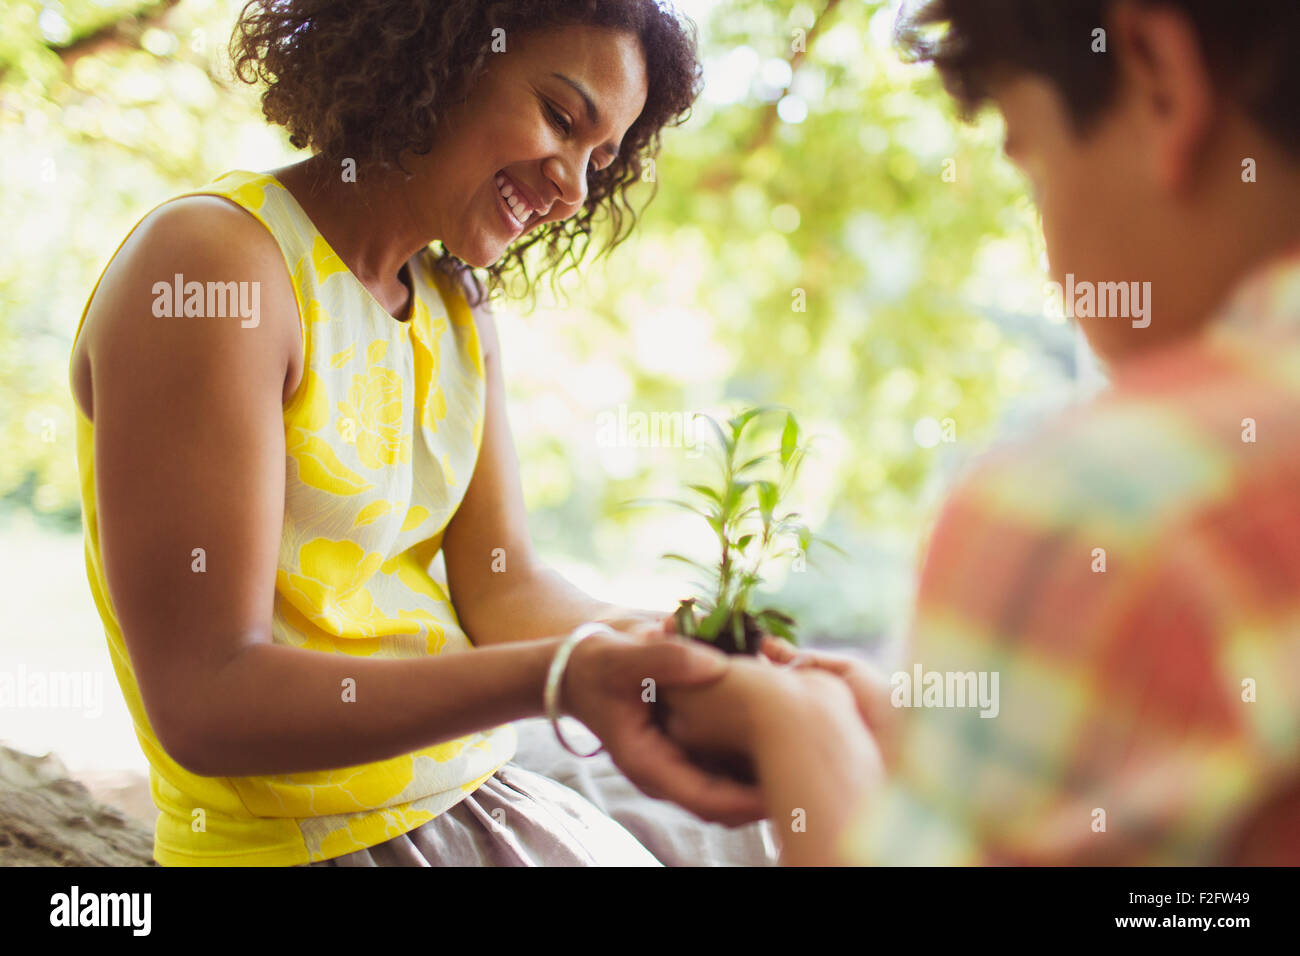 Mother and son cupping seedling outdoors - Stock Image